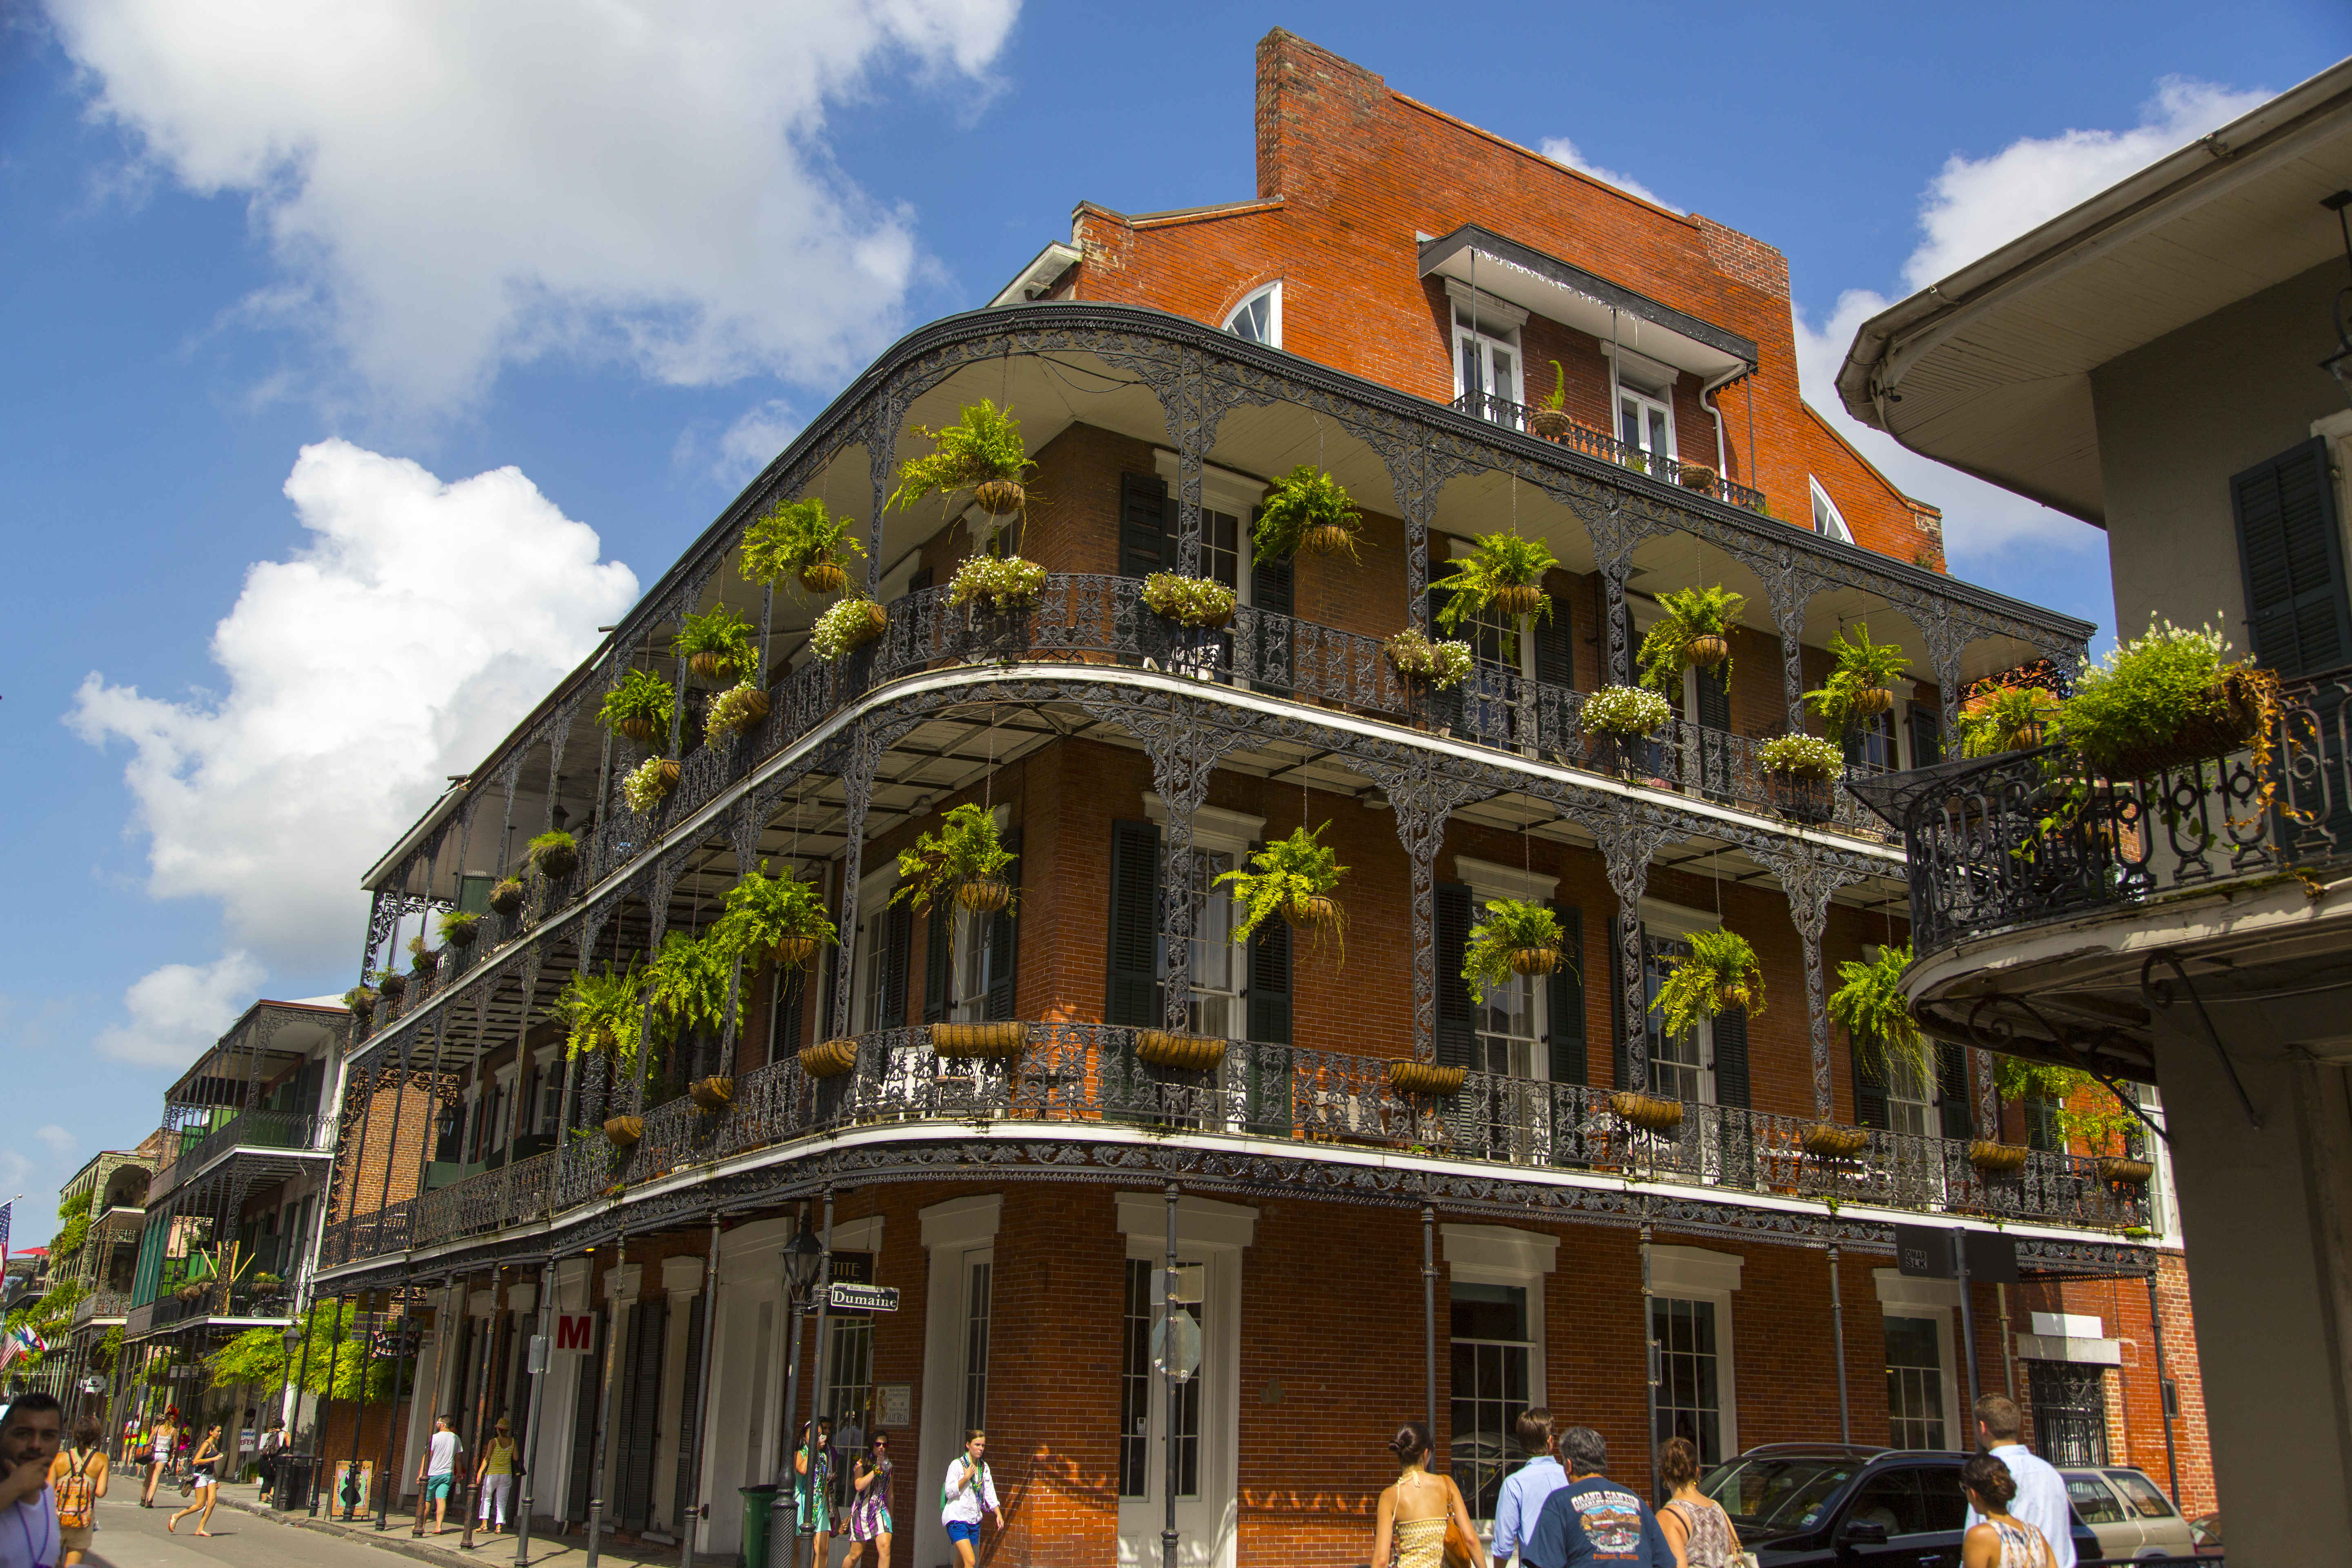 48 hours in New Orleans   Tour West America 5760x3840